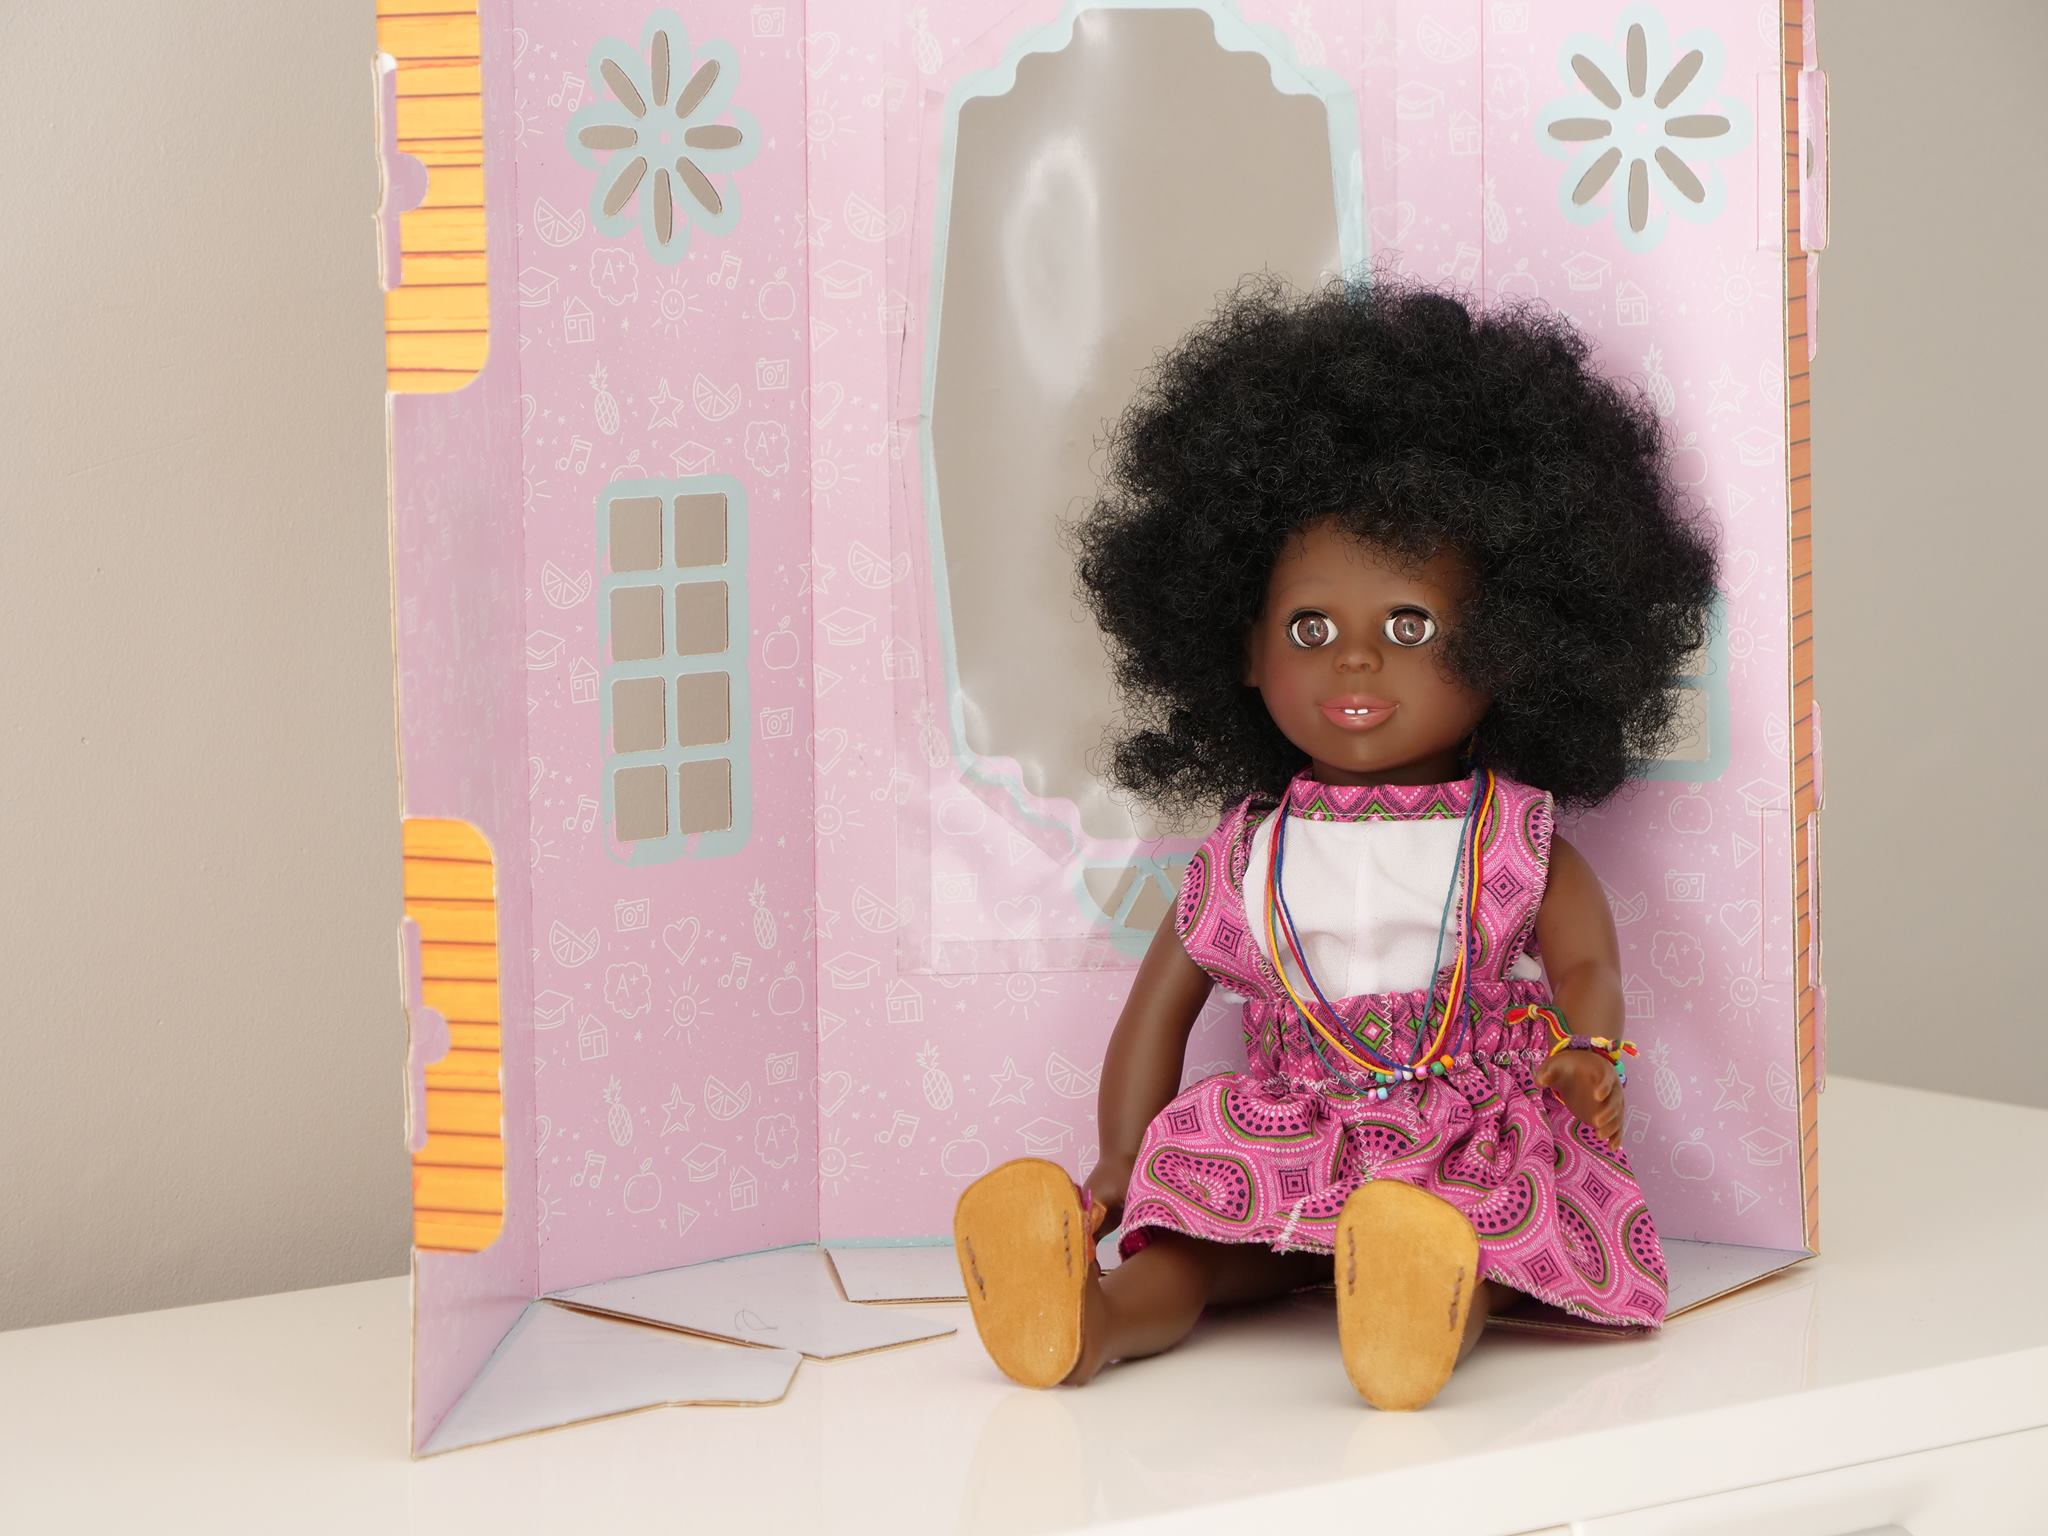 afro girl hunadi sitting by her doll house